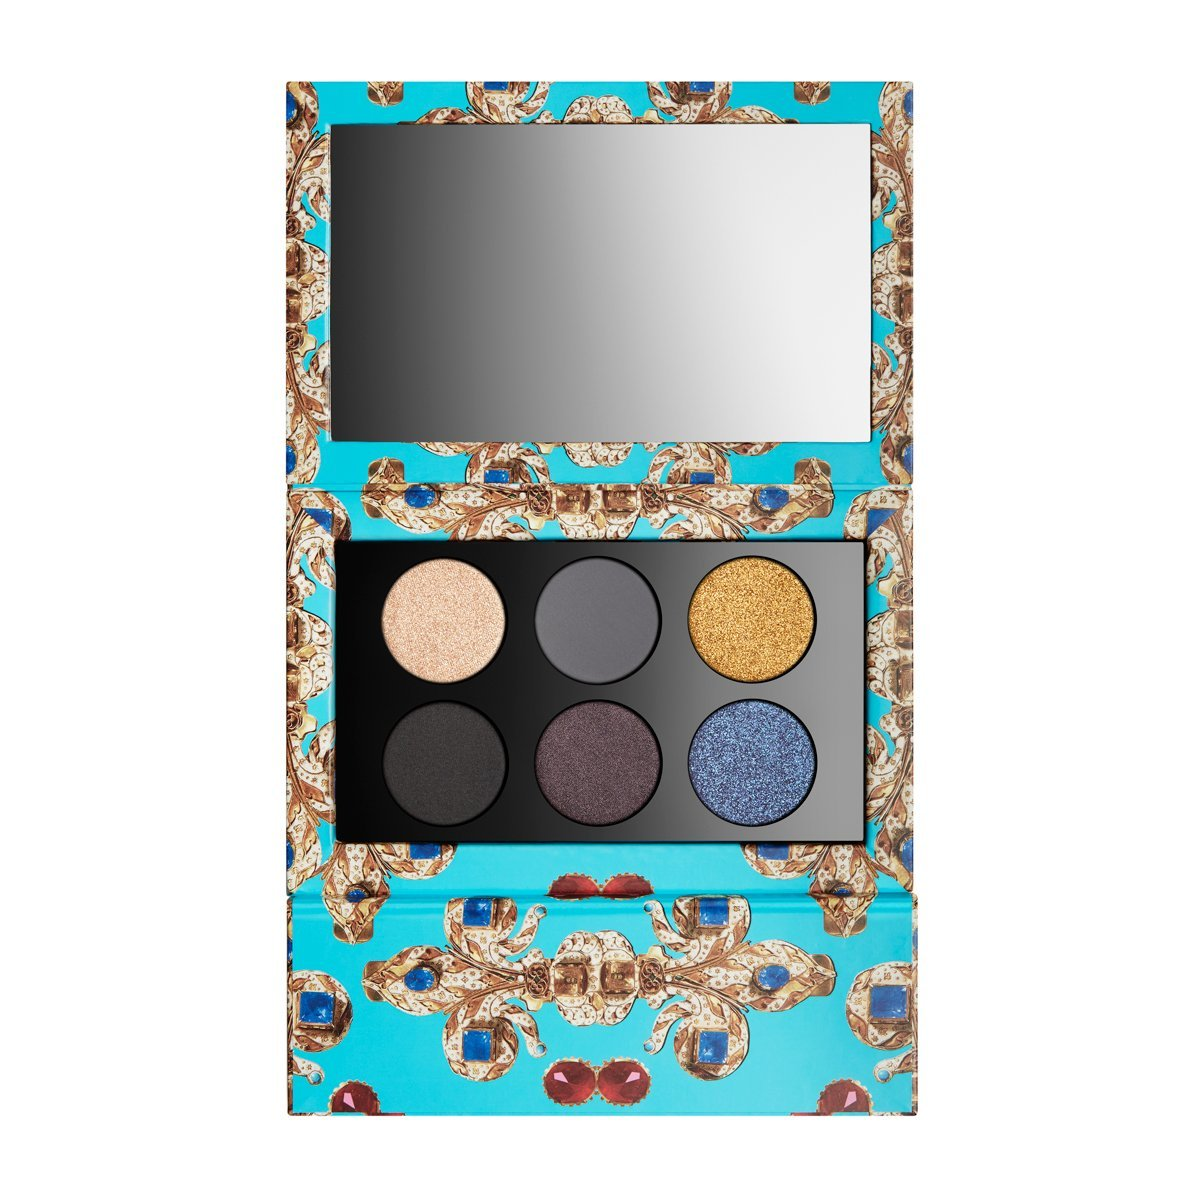 Pat Mcgrath Labs Legendary Makeup By Beauty Barn Stick Series Package 5 Gr Sorry This Product Is Not Available